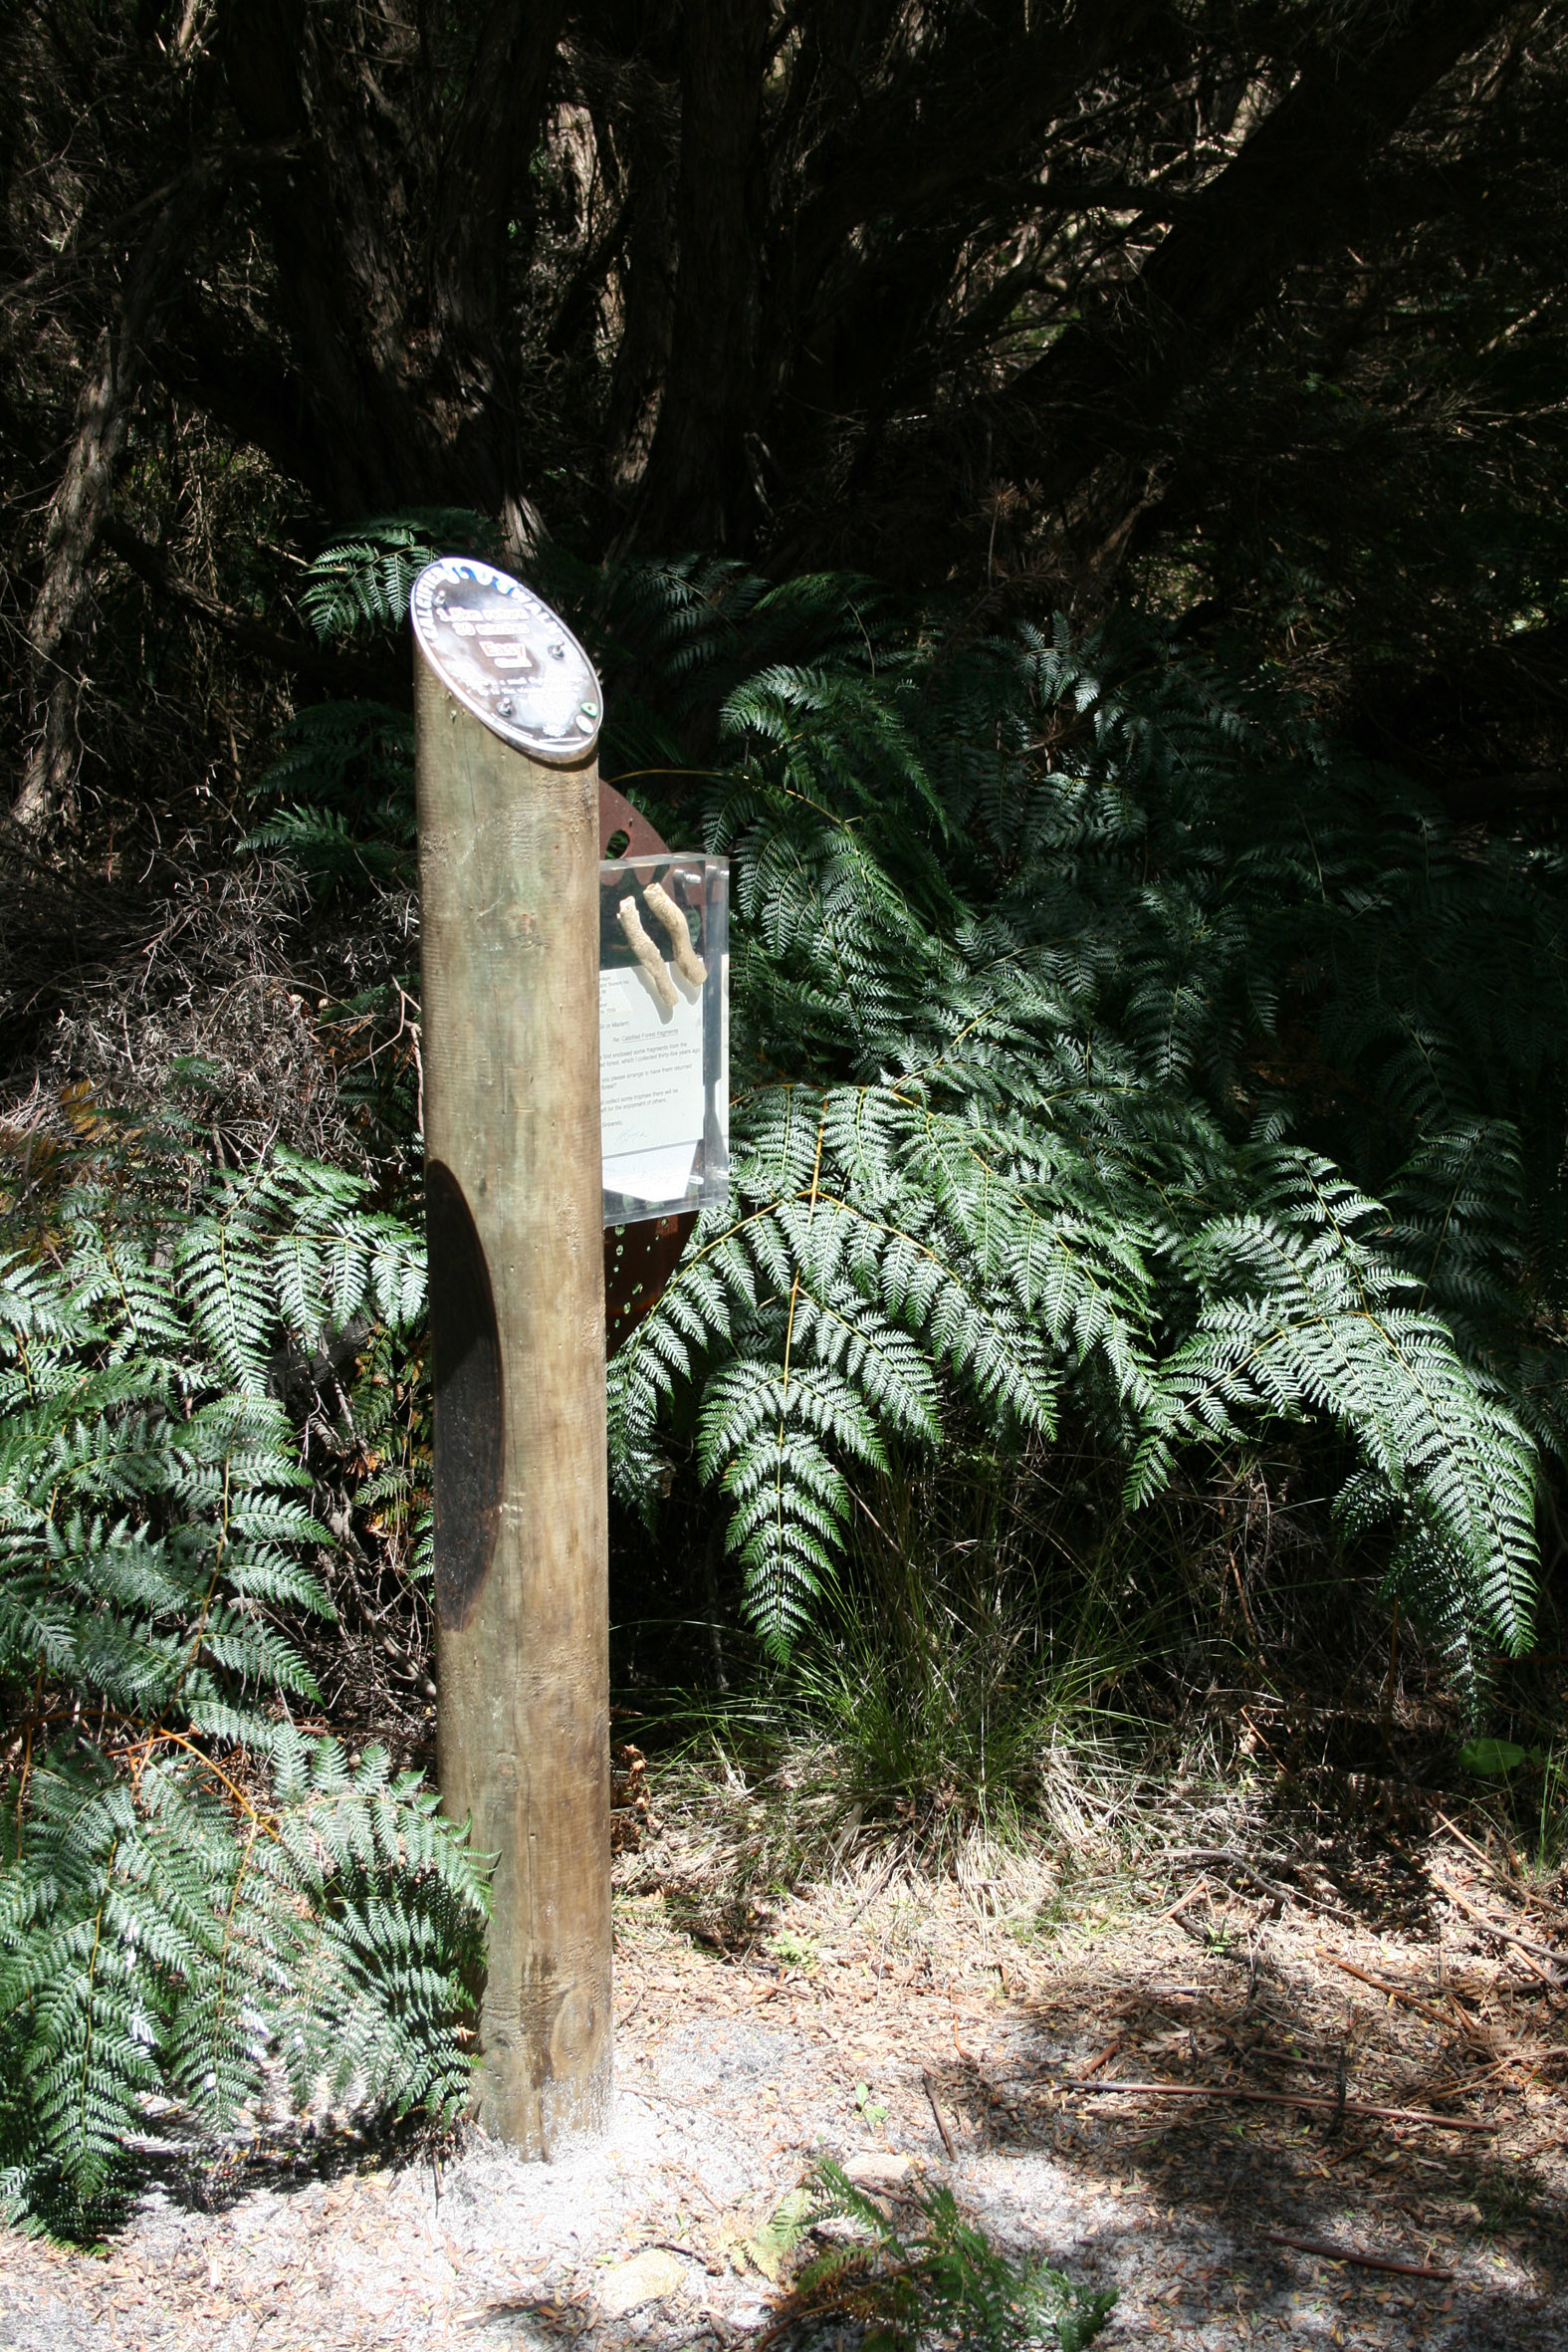 King Island grazing trails